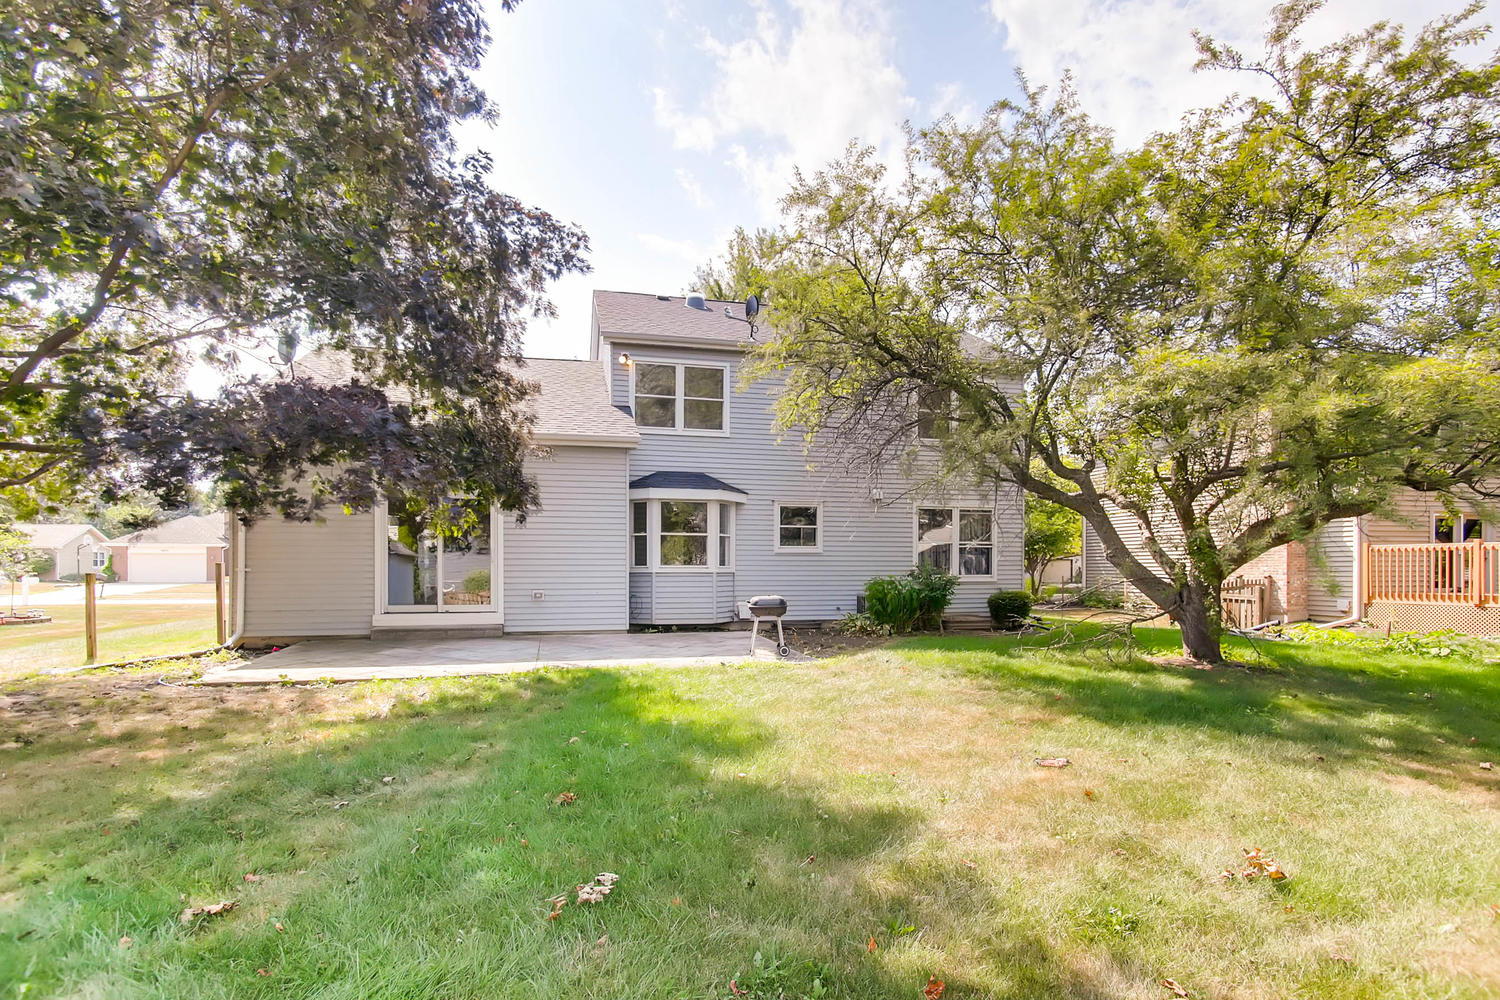 Photo of 2600 Midland Dr, Naperville, IL, 60564